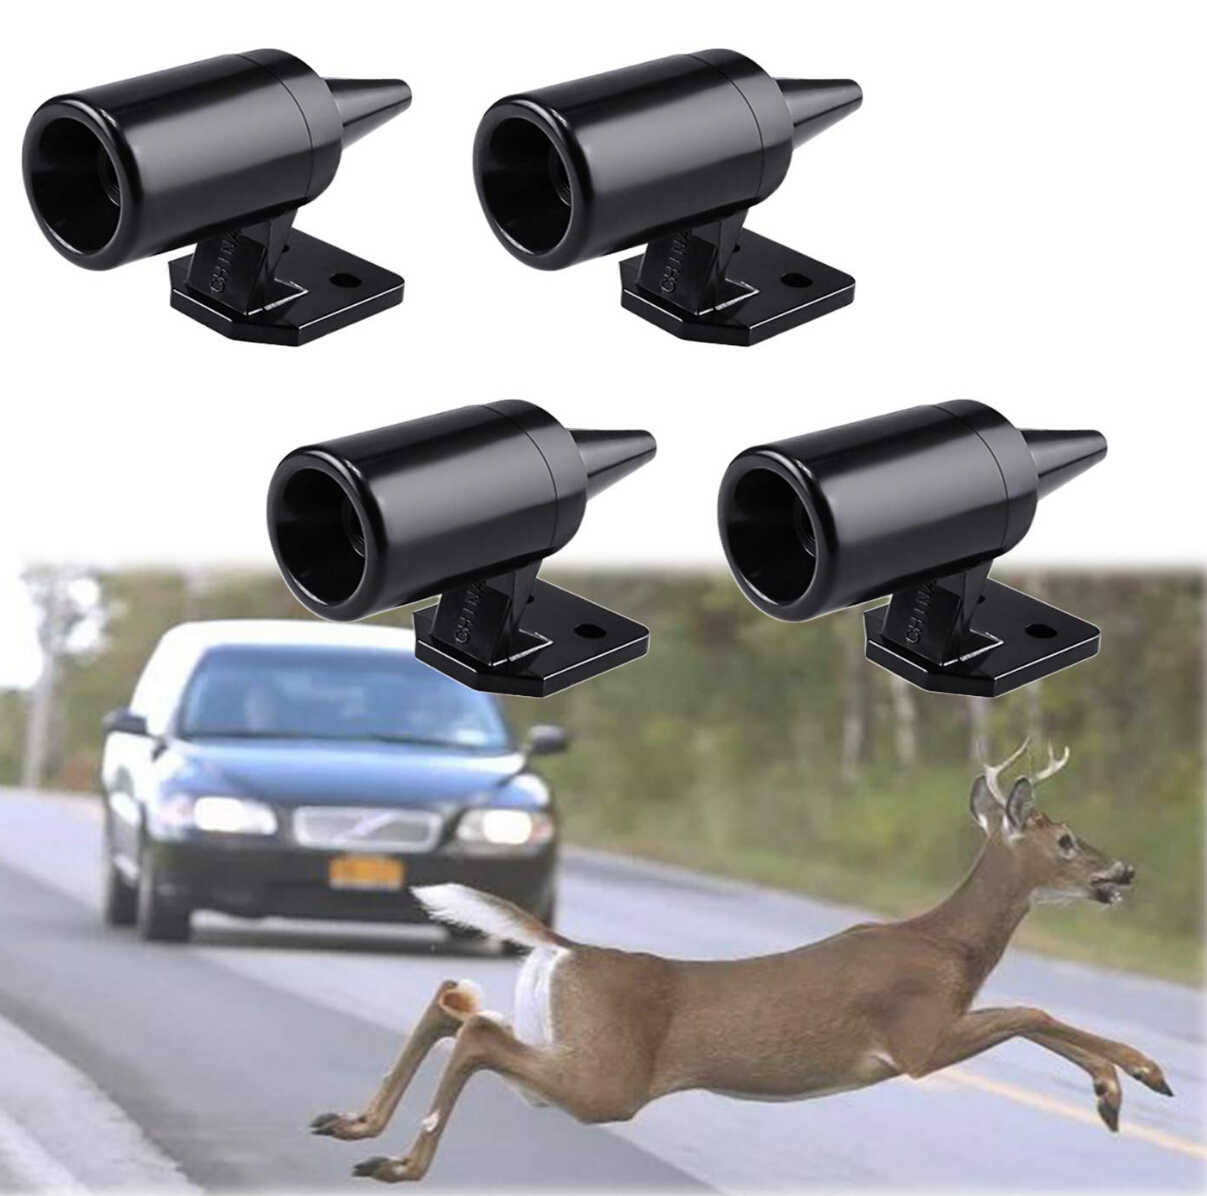 1pc Animal Deer Warning Alarm Bicycle Car for subaru forester jeep grand cherokee ford f150 toyota highlander mitsubishi lancer